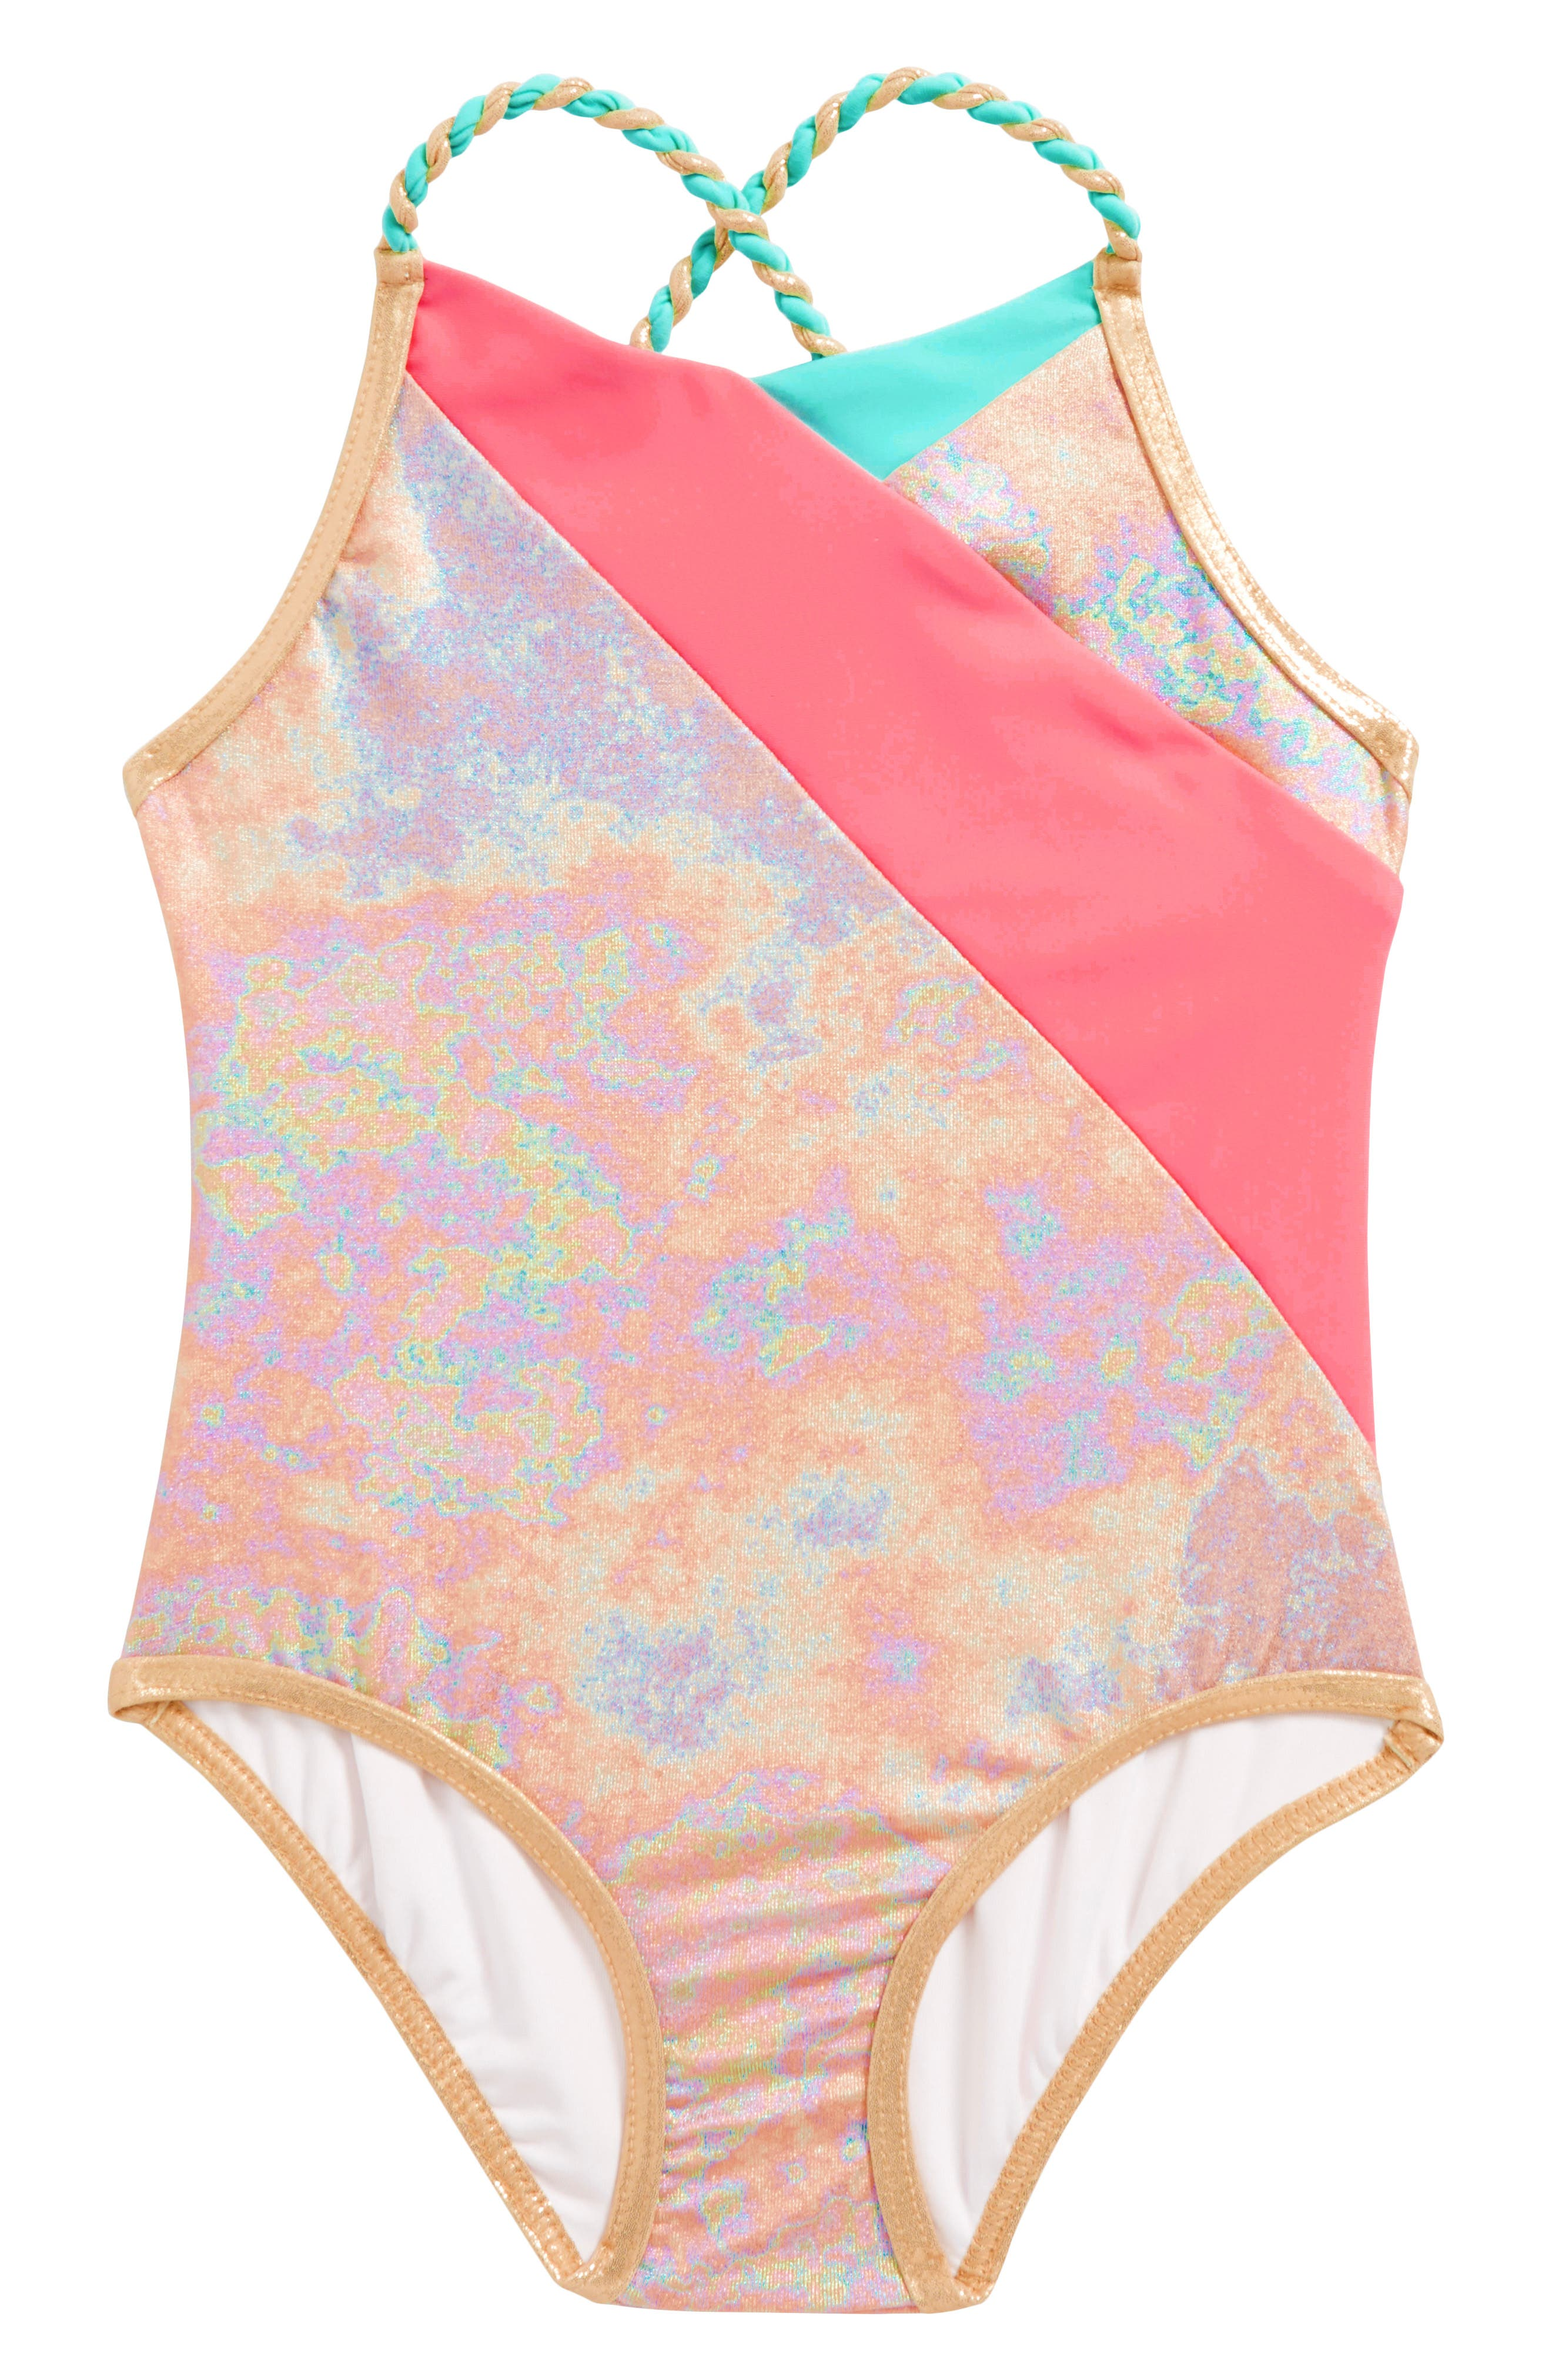 Iridescent One-Piece Swimsuit,                             Main thumbnail 1, color,                             660